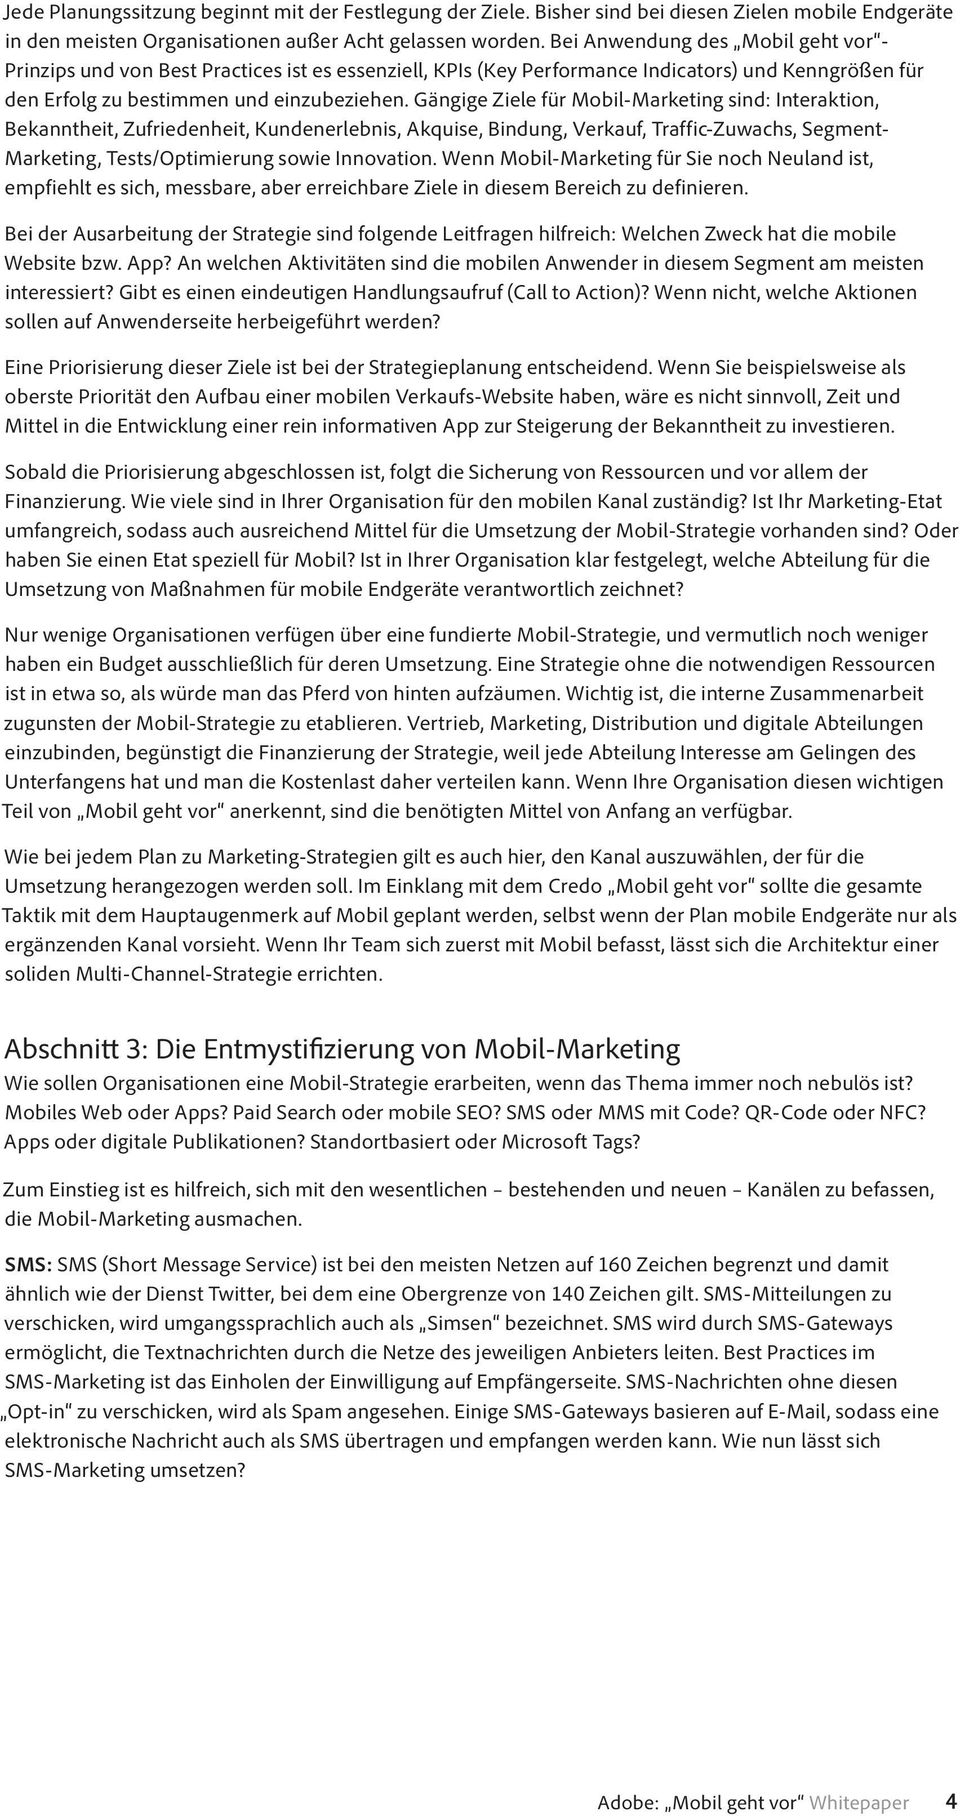 Gängige Ziele für Mobil-Marketing sind: Interaktion, Bekanntheit, Zufriedenheit, Kundenerlebnis, Akquise, Bindung, Verkauf, Traffic-Zuwachs, Segment- Marketing, Tests/Optimierung sowie Innovation.